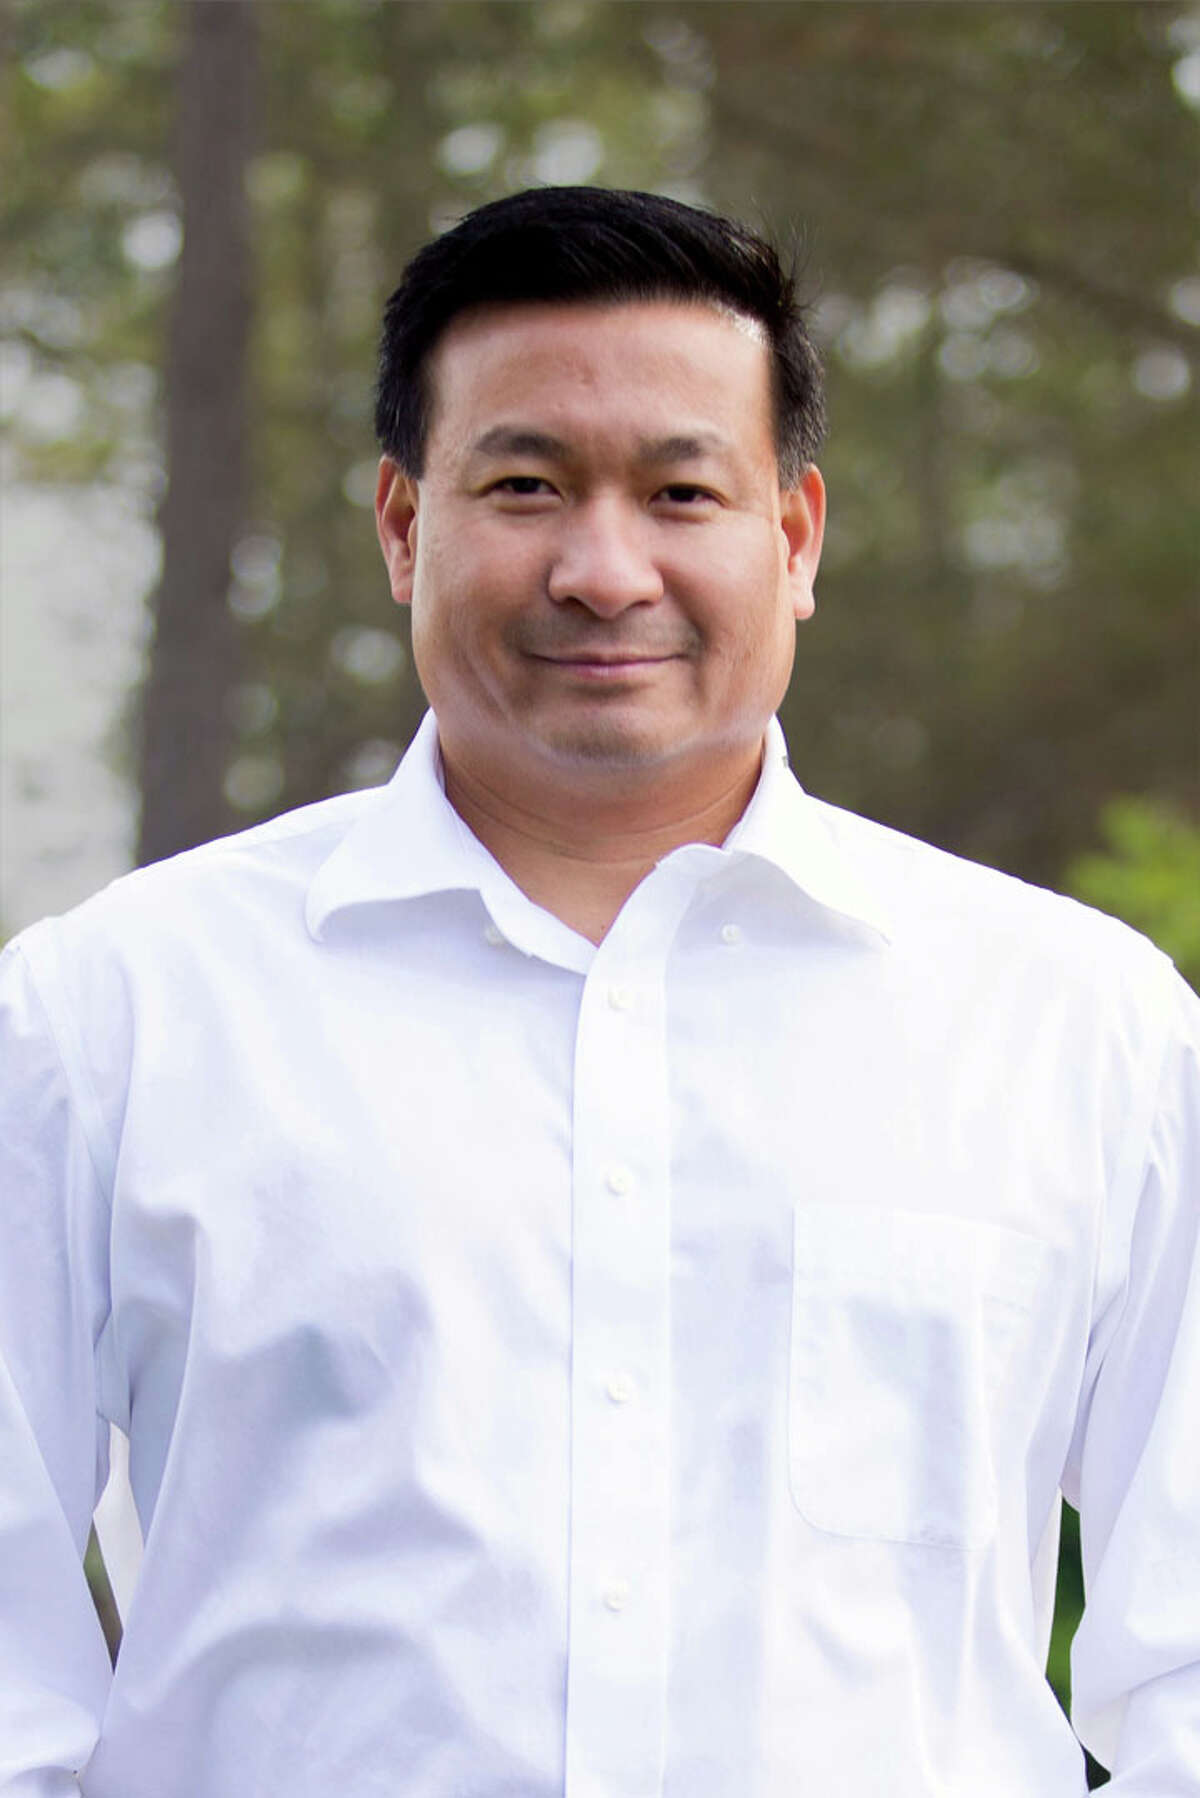 Nghi T. Ho -- candidate for Dist. 149.